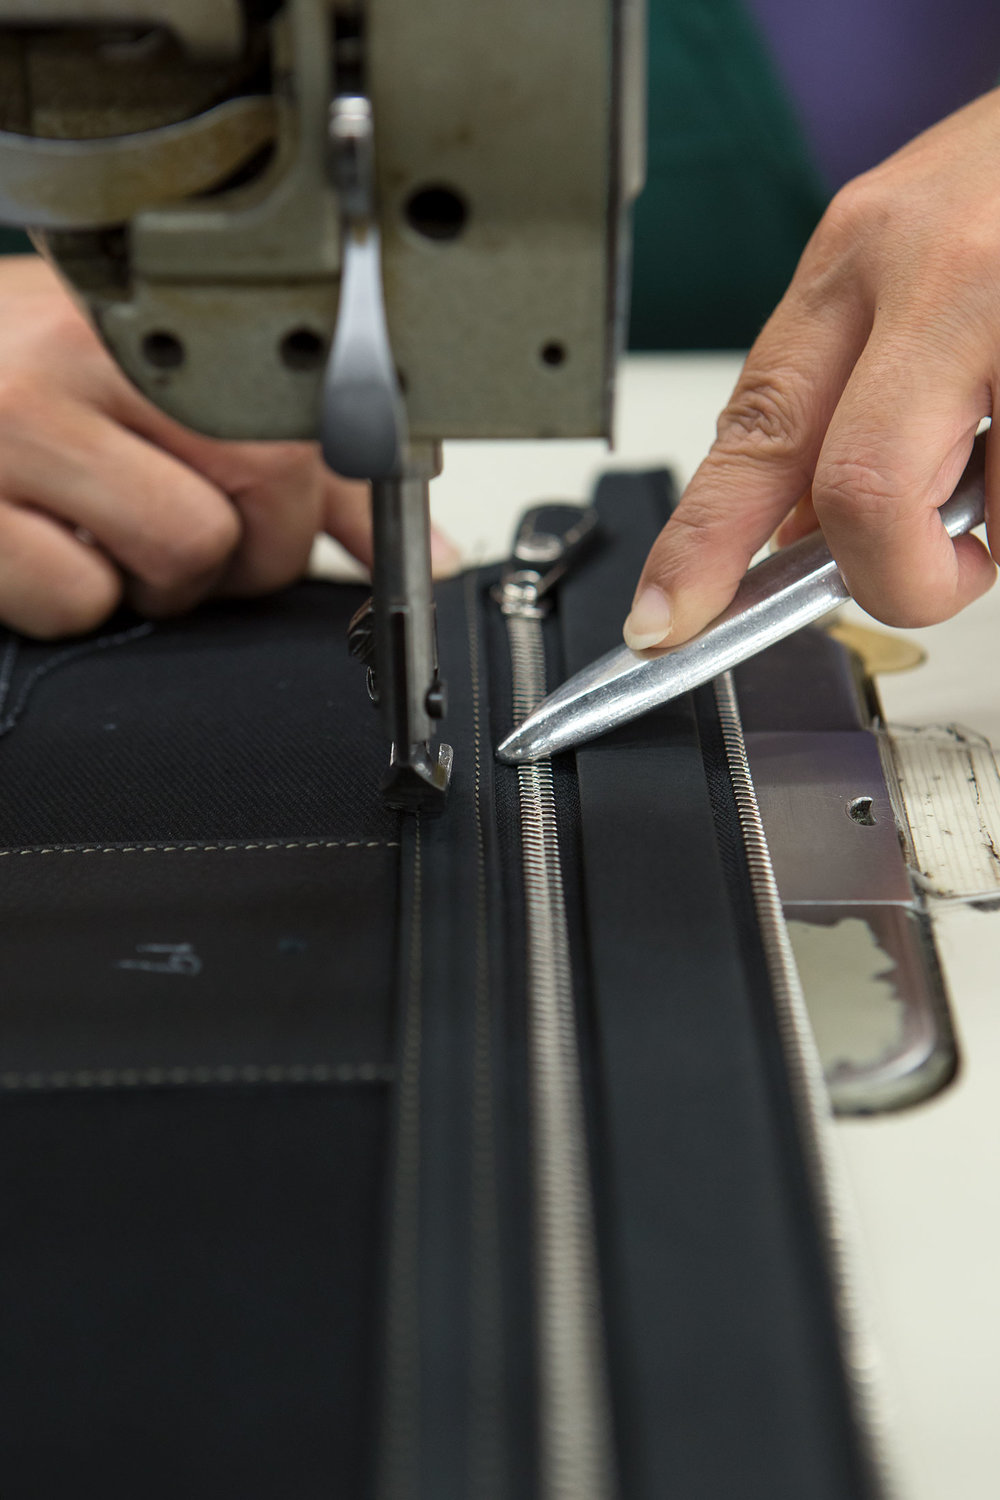 Sewing on a zipper.